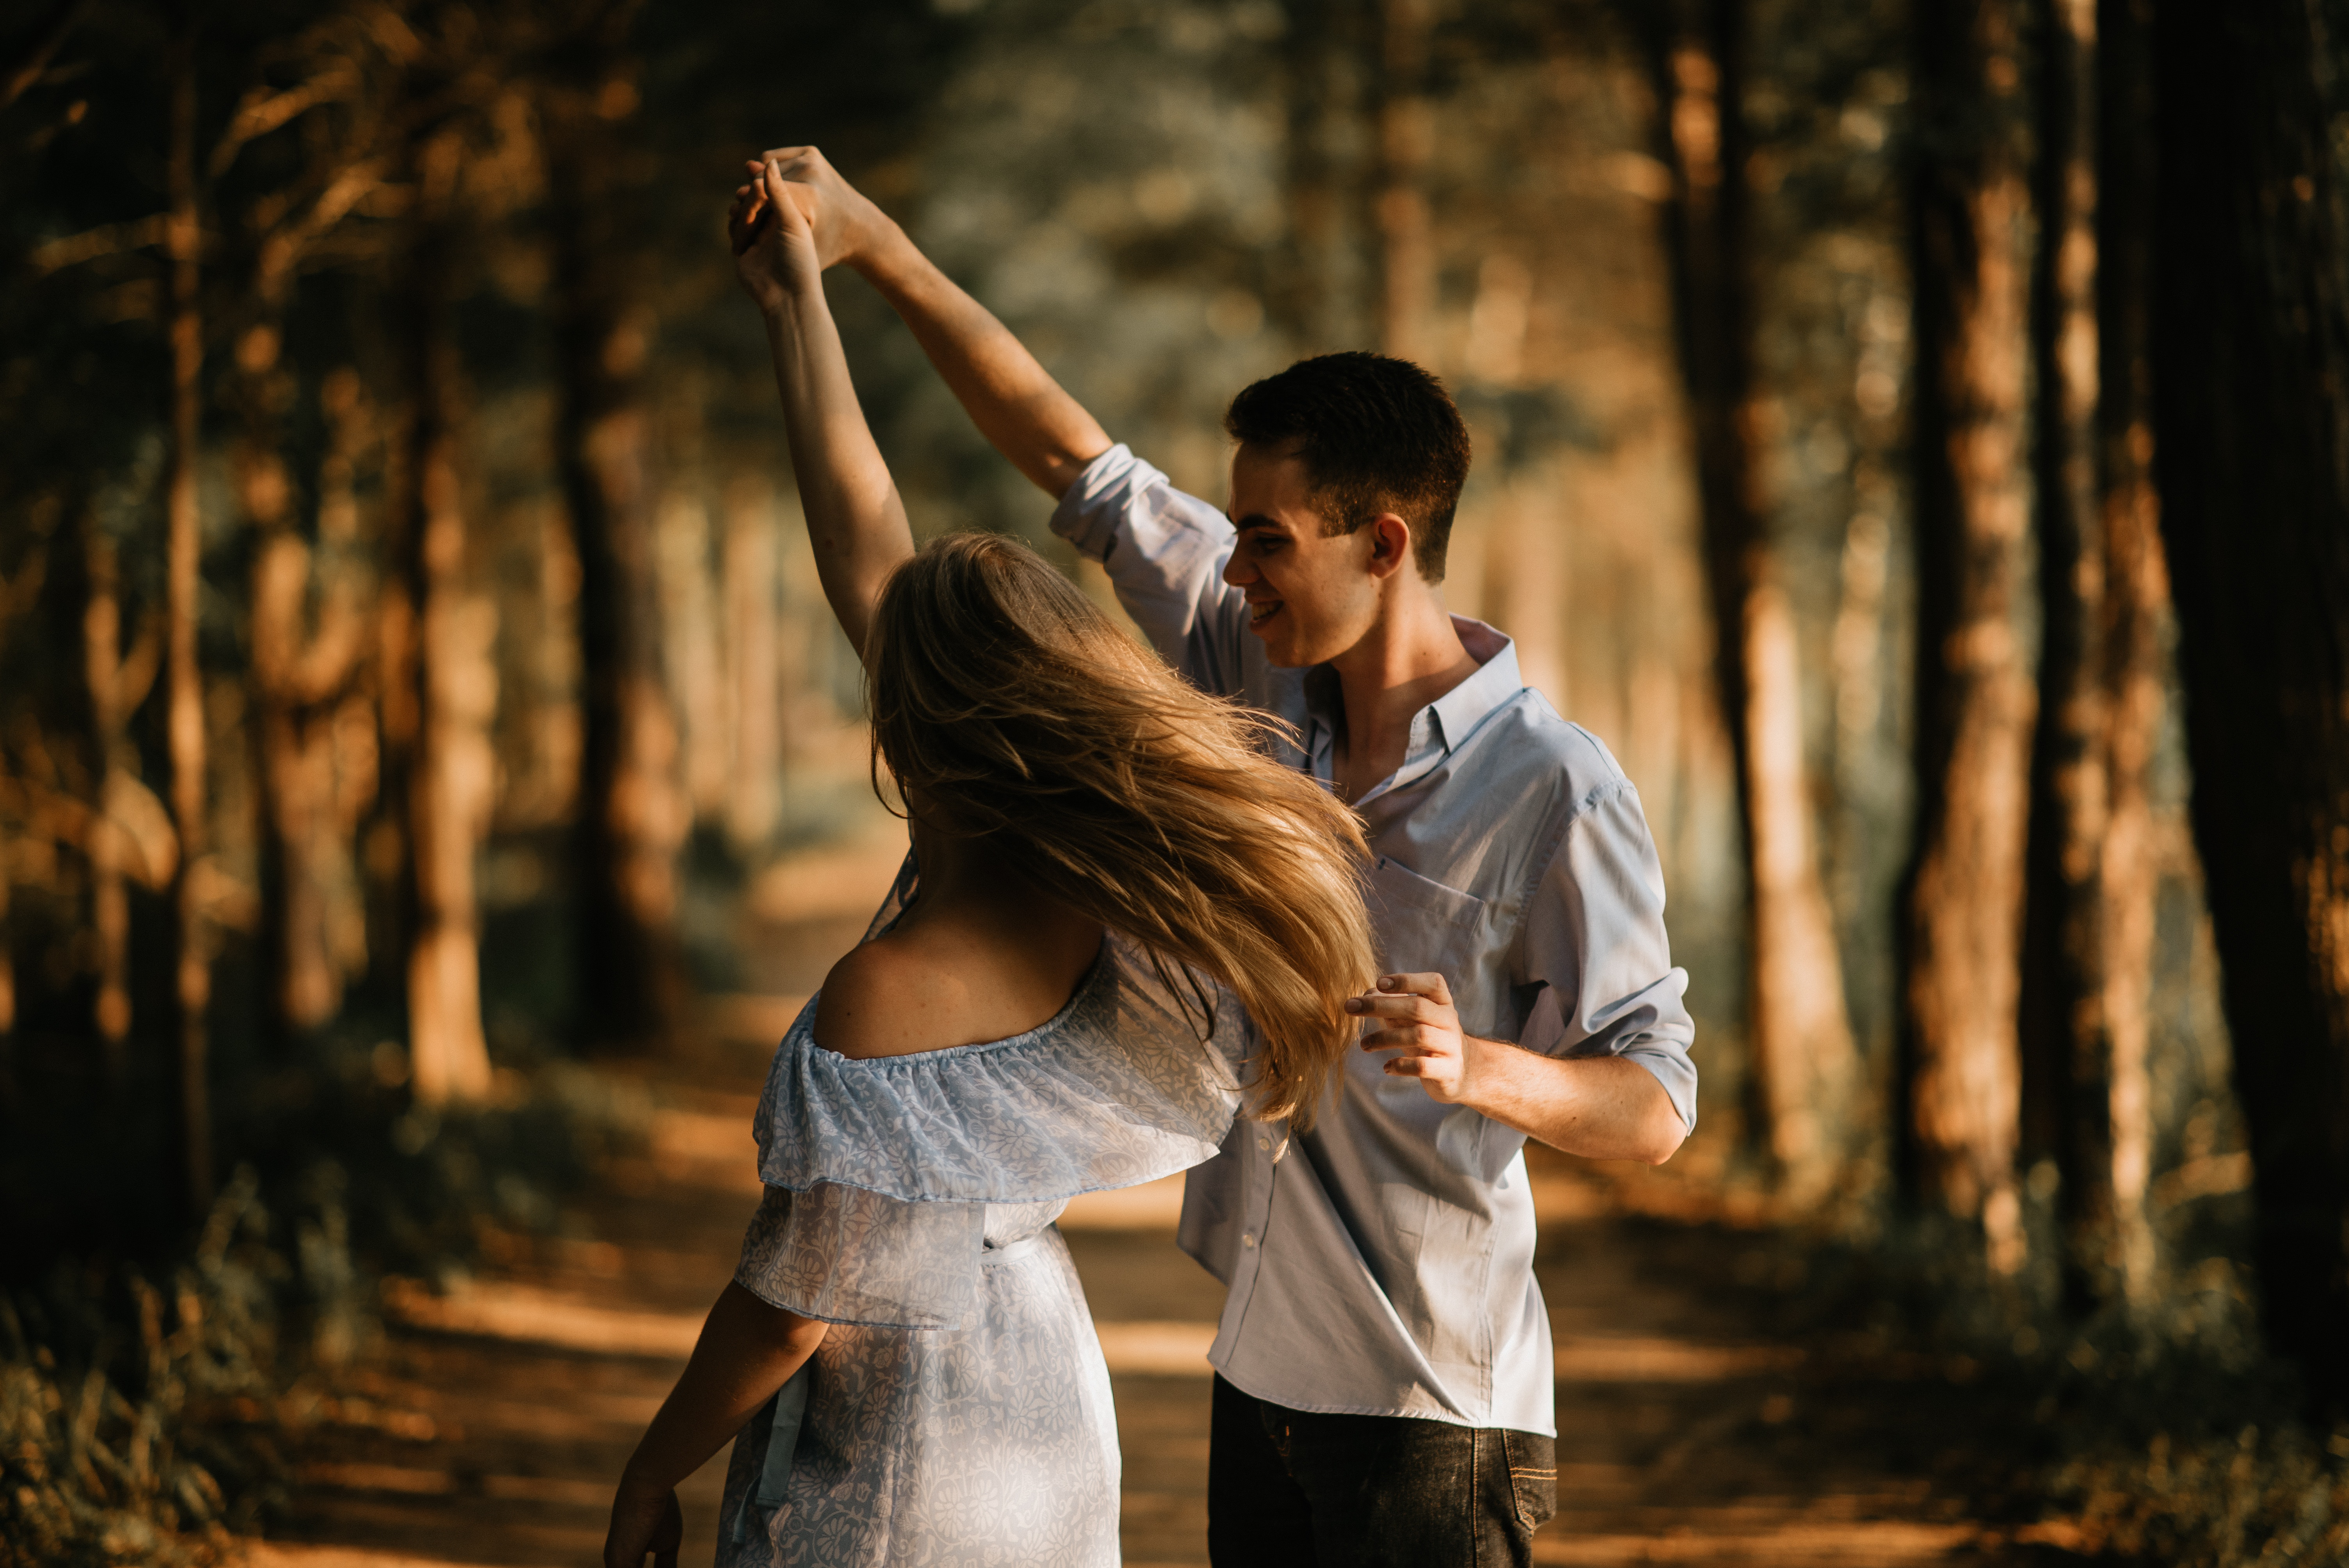 3 Easy Relationship Guide For Nice People